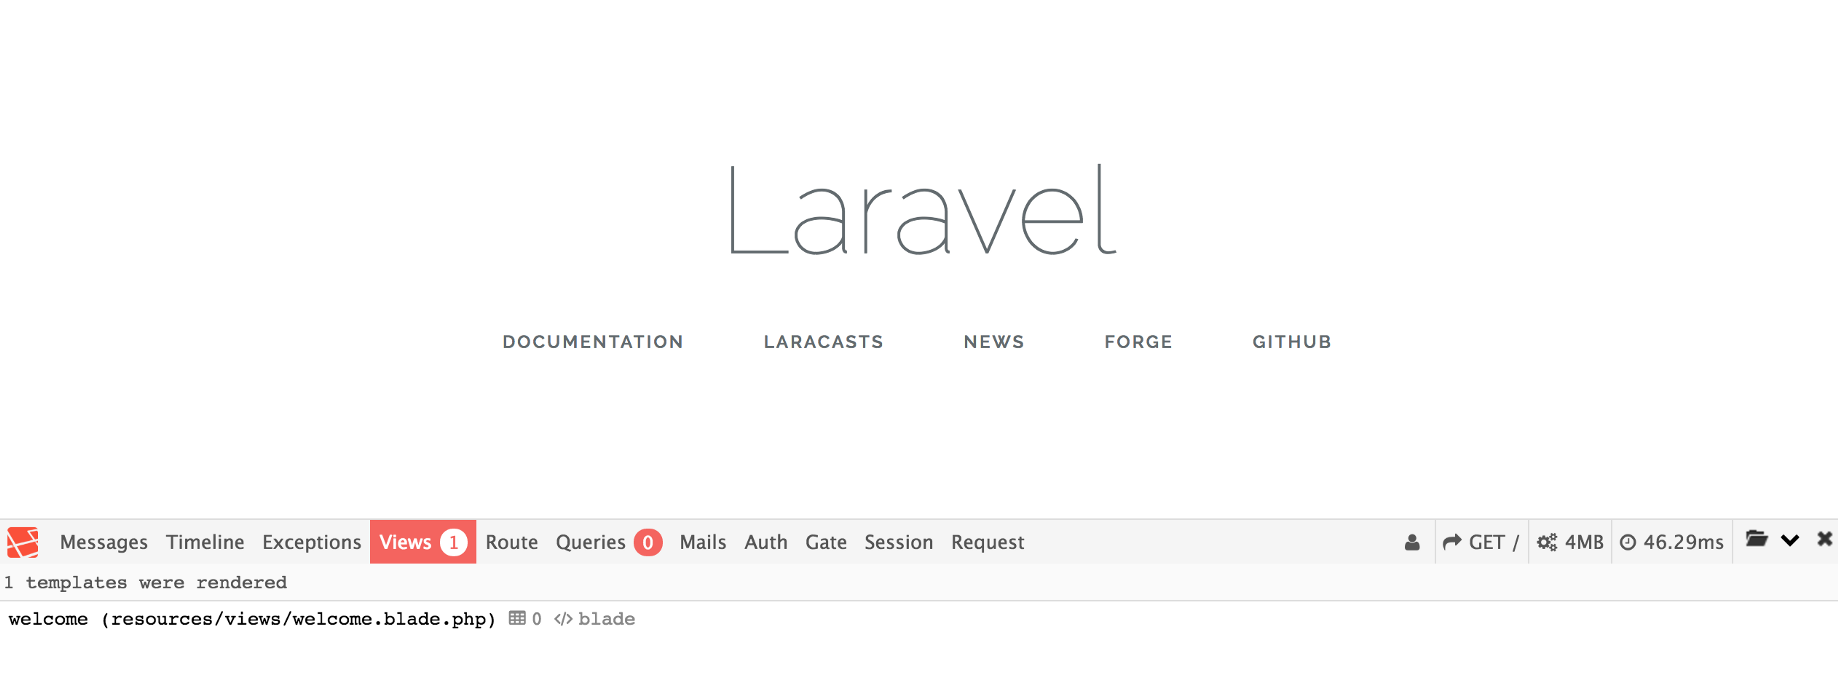 Package Auto-Discovery In Laravel 5 5 - Taylor Otwell - Medium